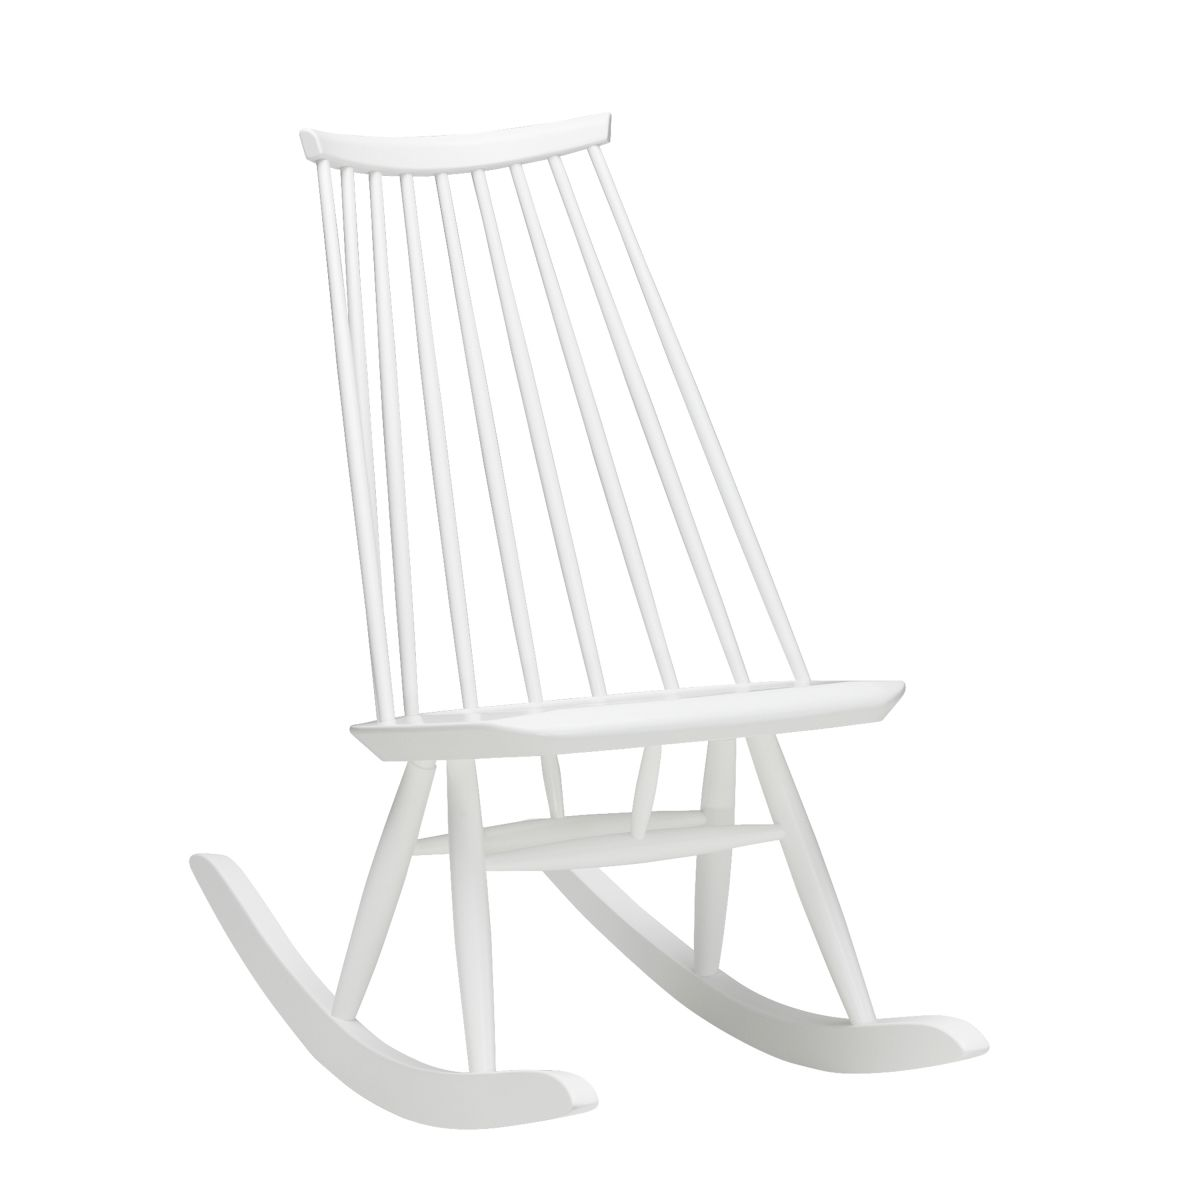 Mademoiselle-Rocking-Chair-White-Lacquer